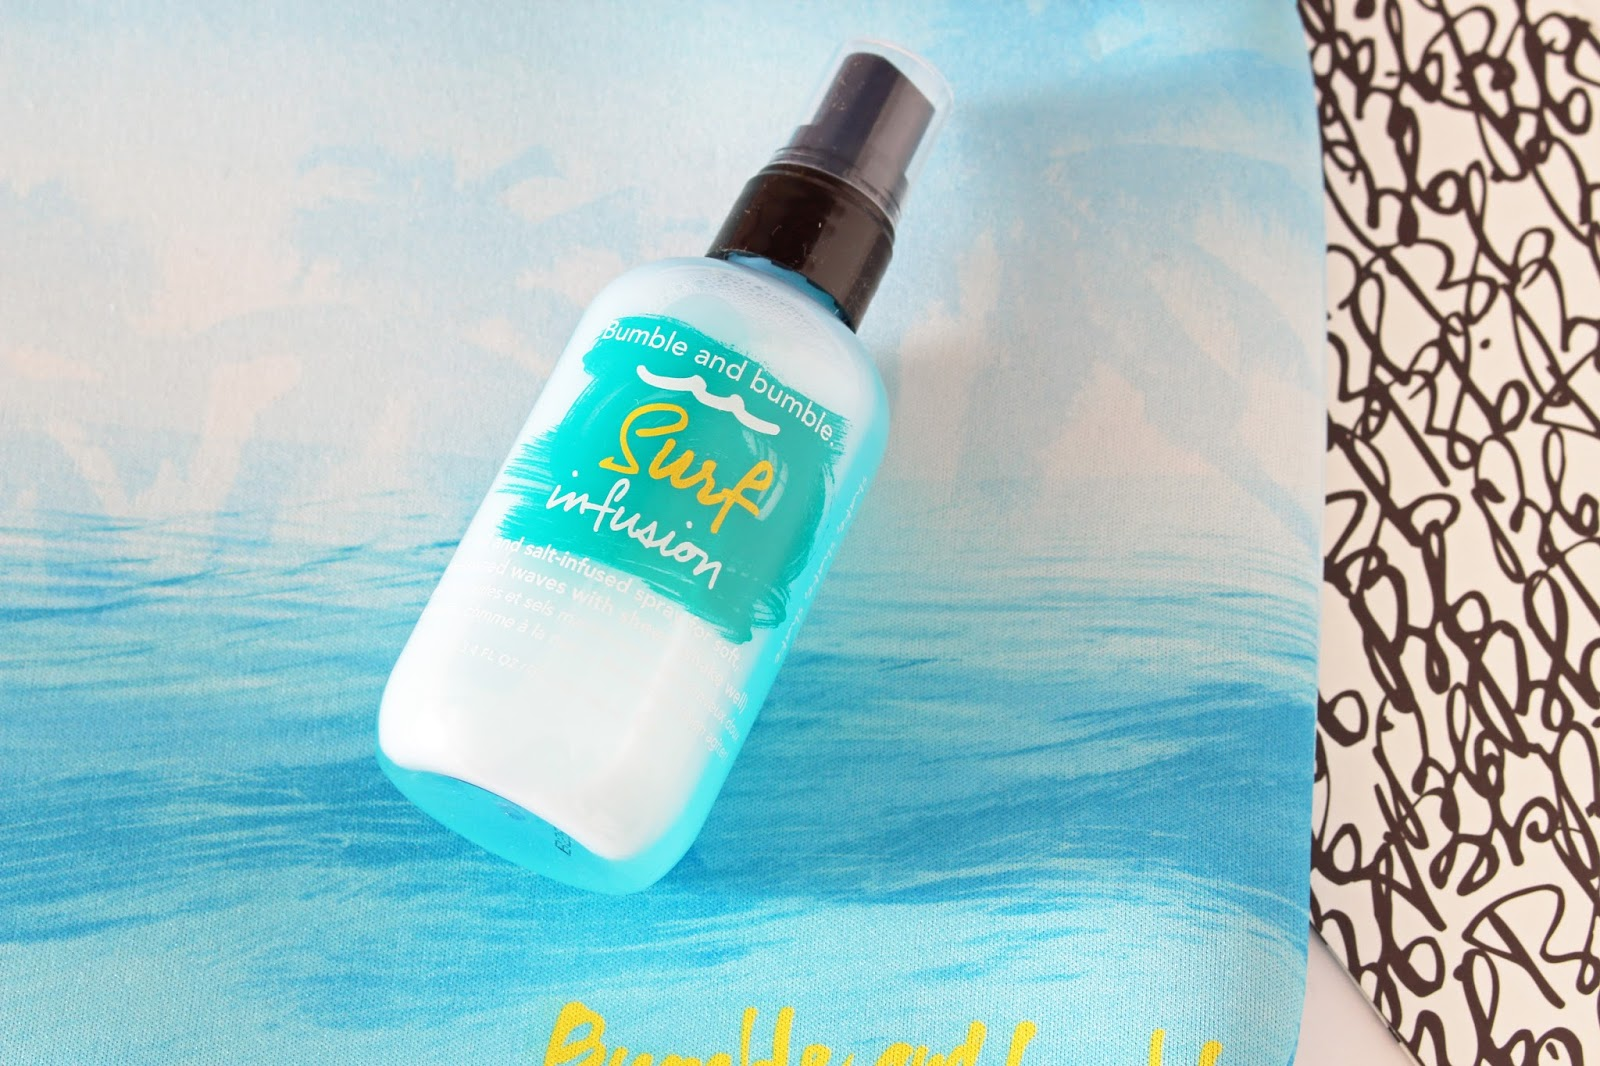 bumble and bumble surf infusion new hair spray for beach waves